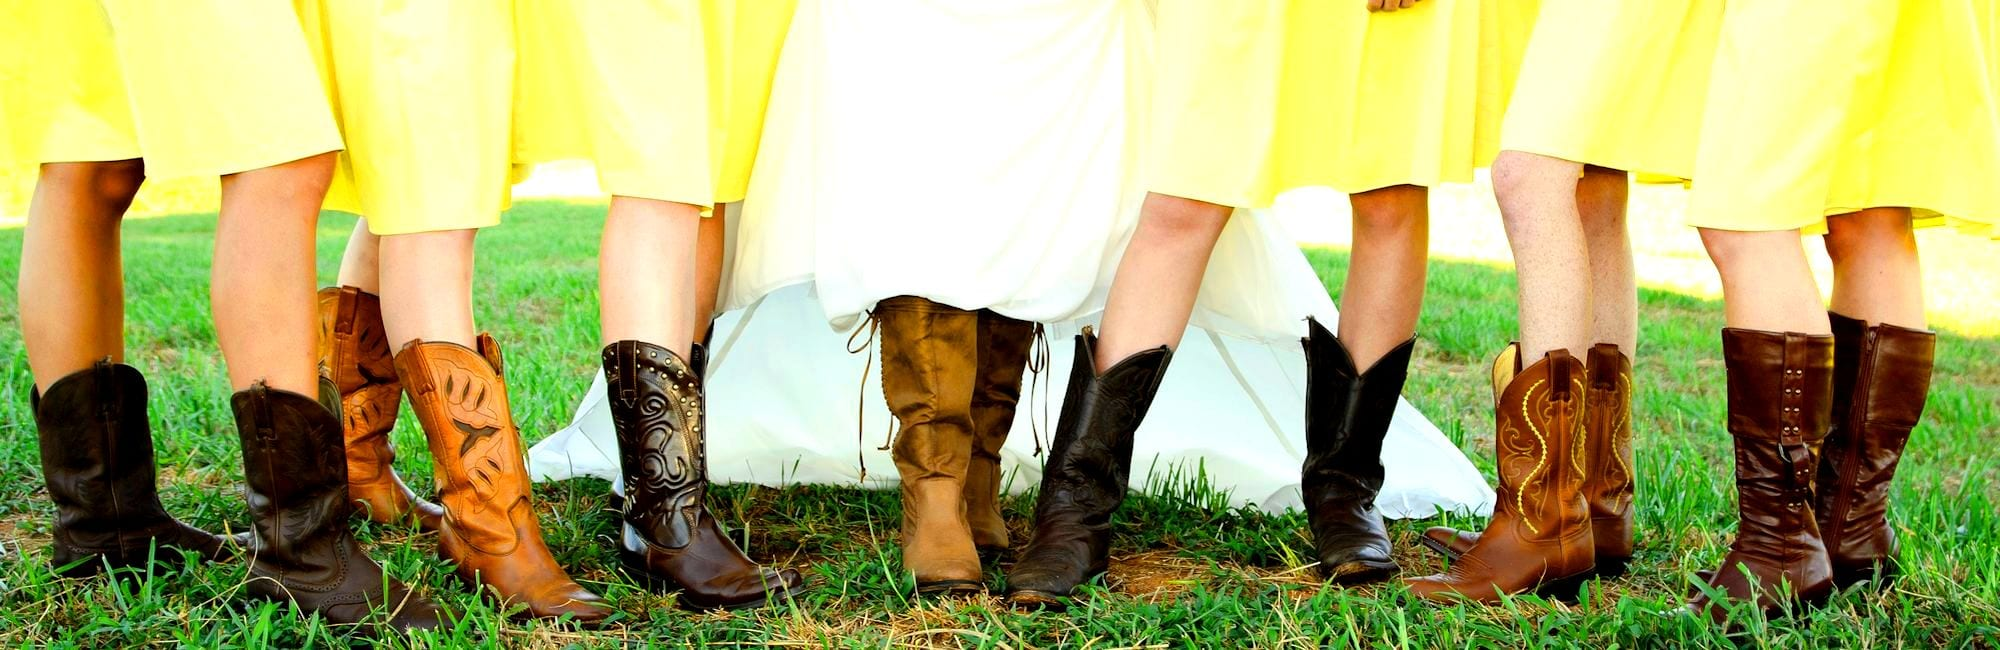 Bride and Bridesmaids show off their boots at a country wedding.